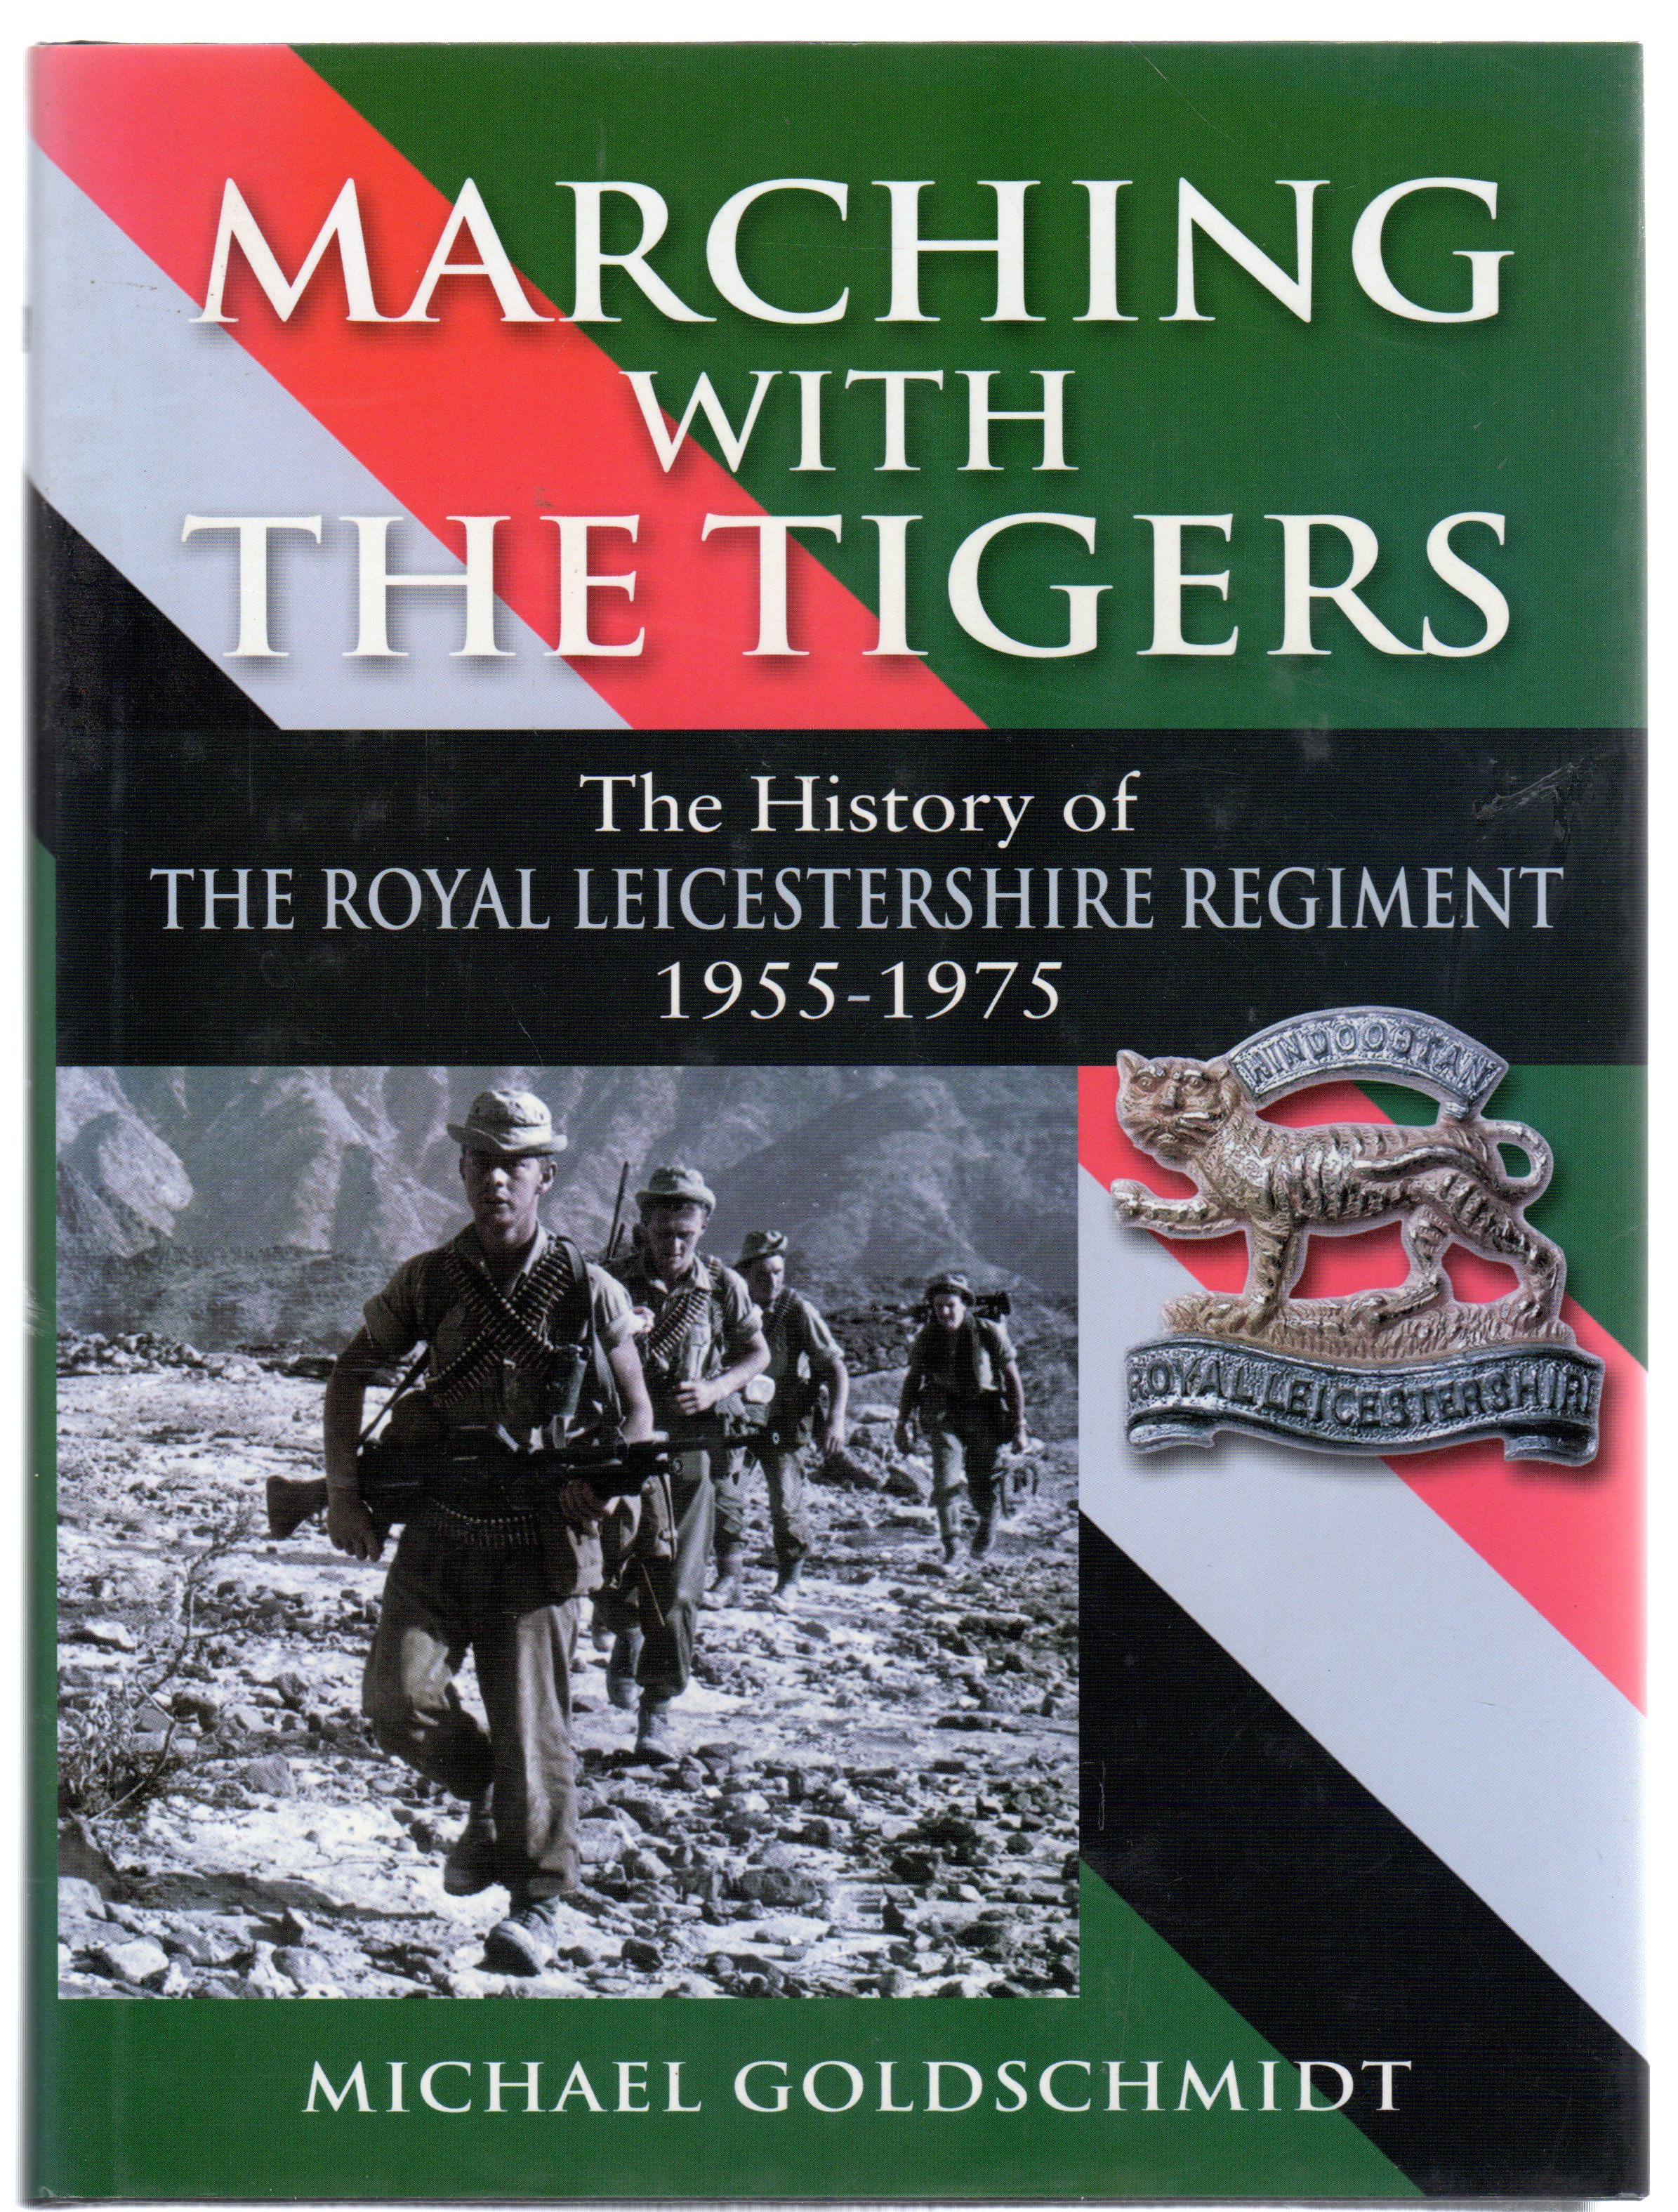 Image for Marching with the Tigers : The History of the Royal Leicestershire Regiment 1955-1975 (SIGNED COPY)